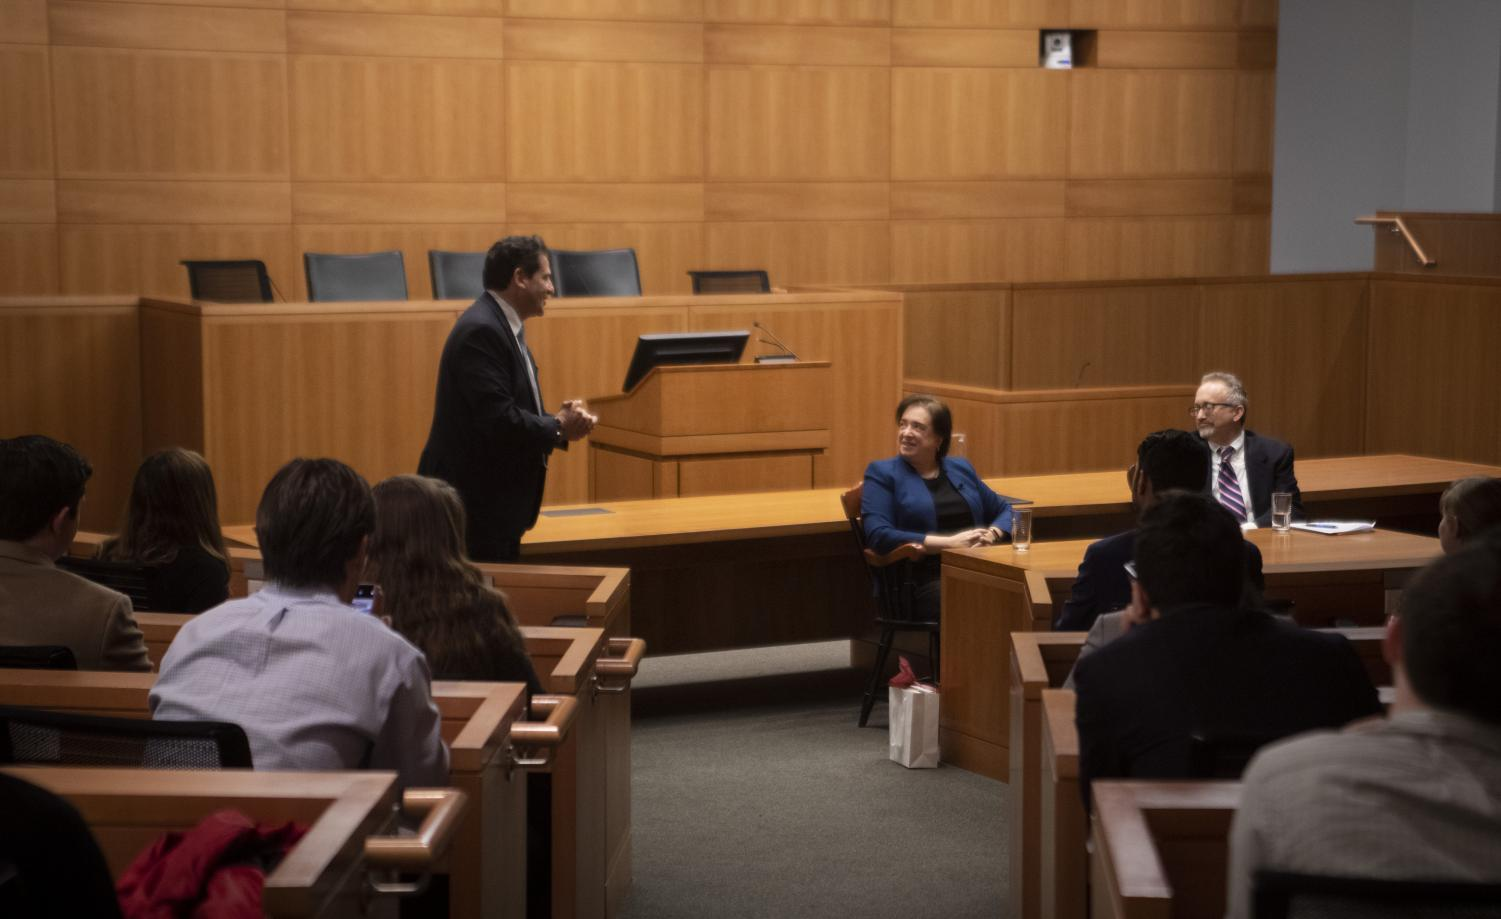 Matthew Diller, dean of Fordham Law School, hosted Supreme Court Associate Justice Elena Kagan to discuss her experience in the legal system.